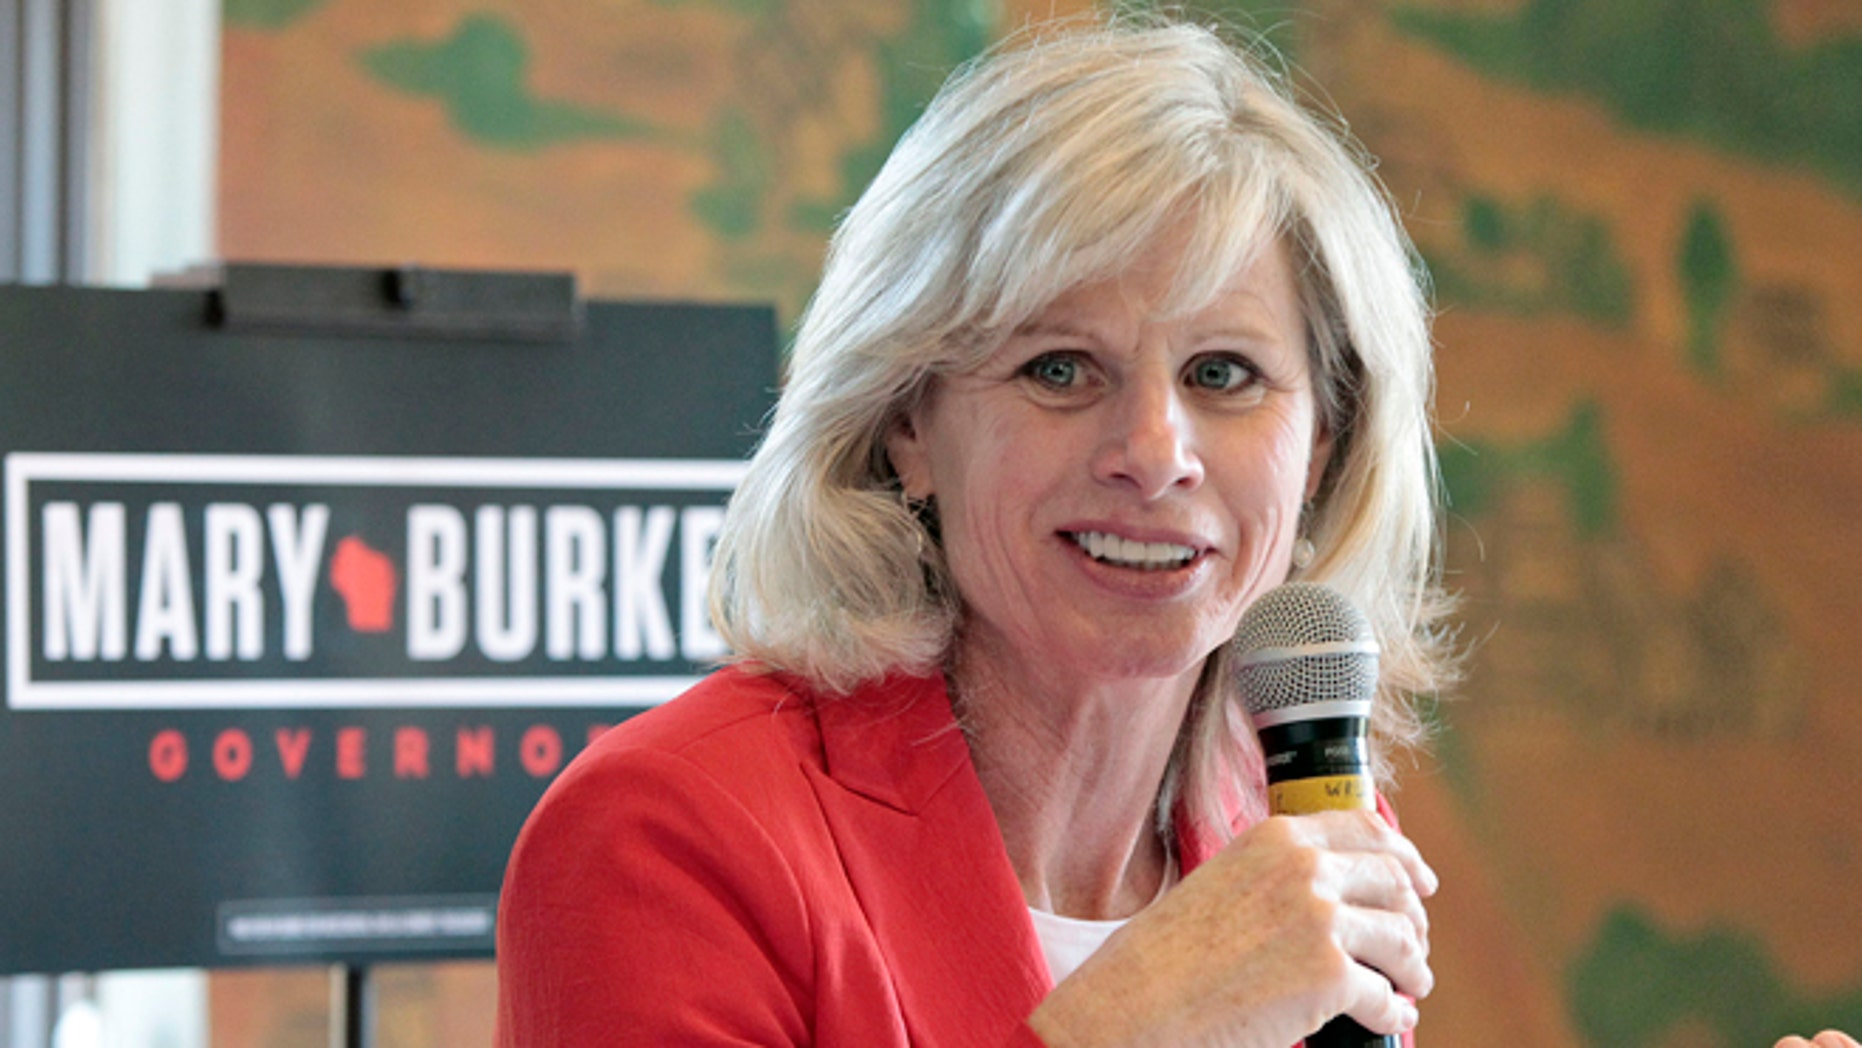 In this Sept. 22, 2014 photo, Democratic Wisconsin gubernatorial candidate Mary Burke speaks at an education forum in Madison, Wis.